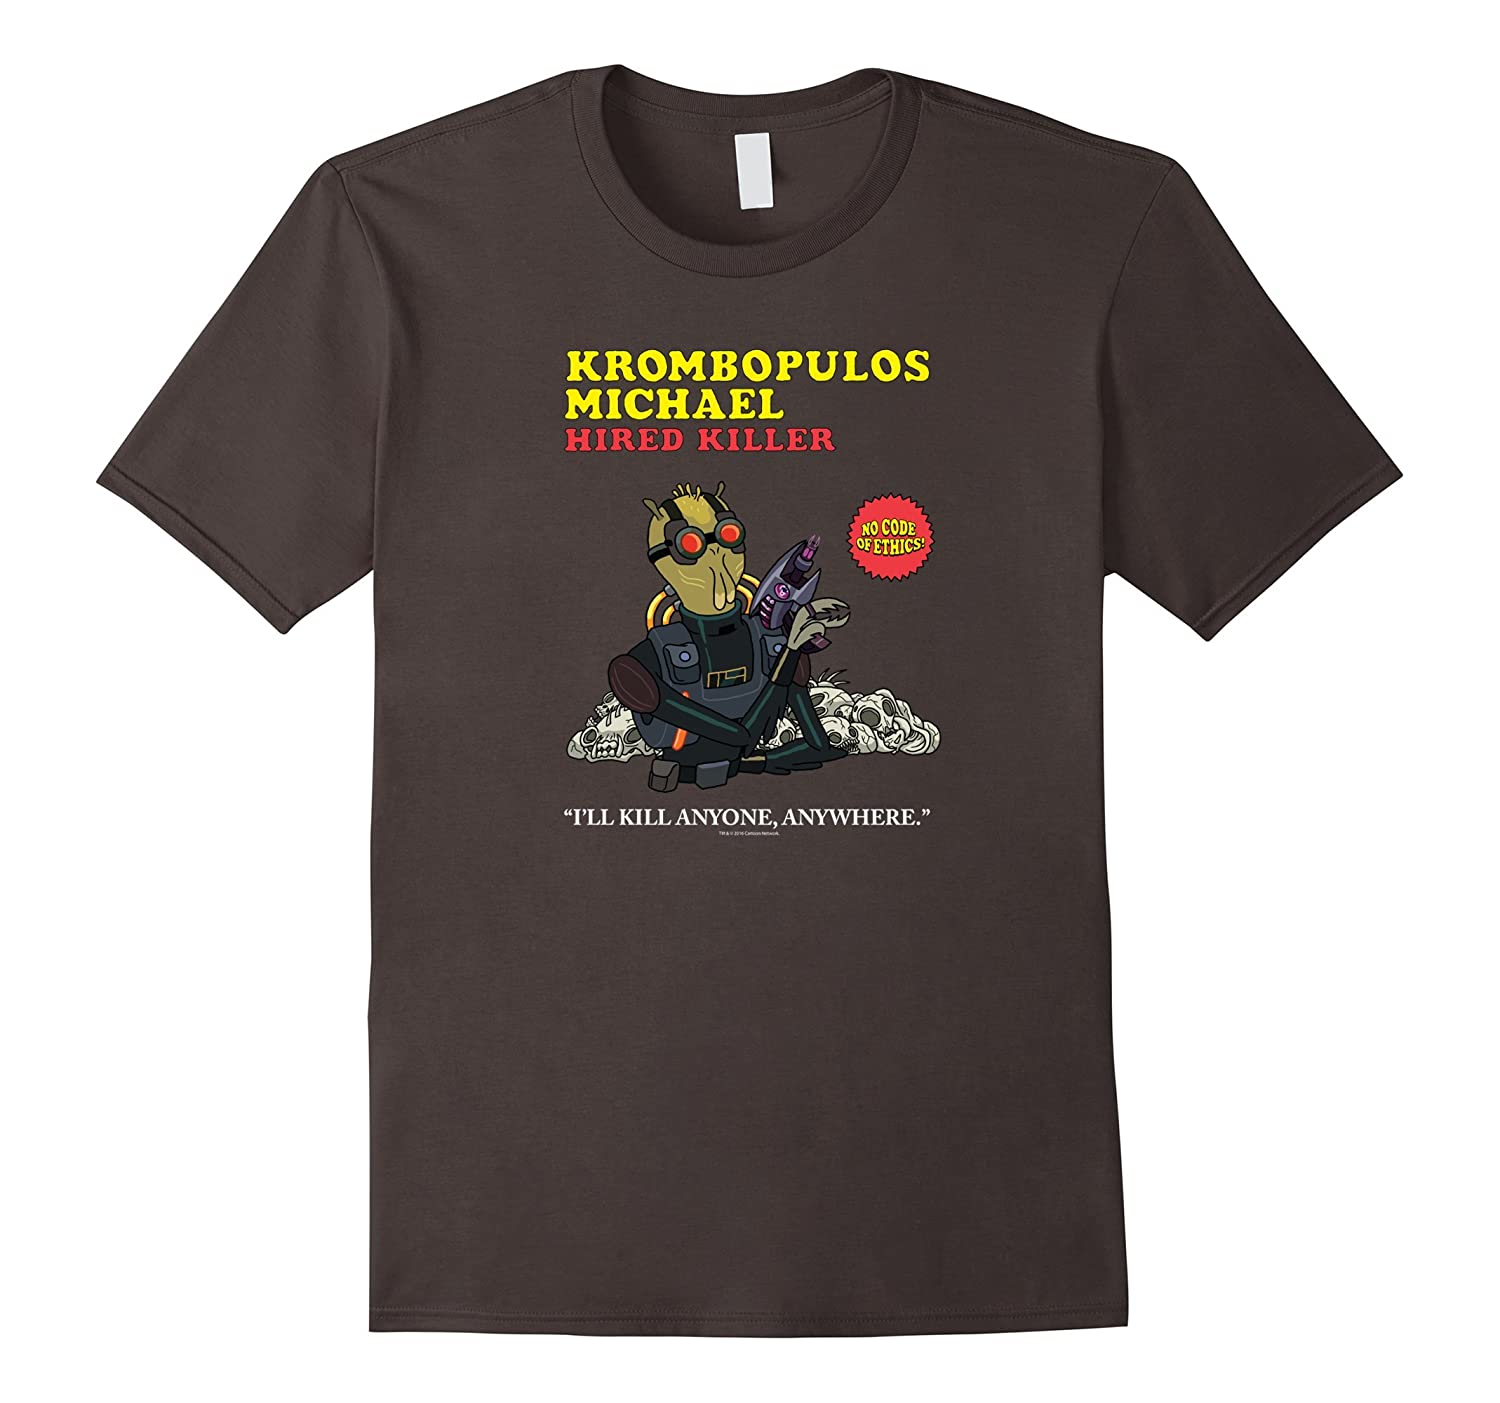 Rick & Morty Krombopulos Michael-ah my shirt one gift